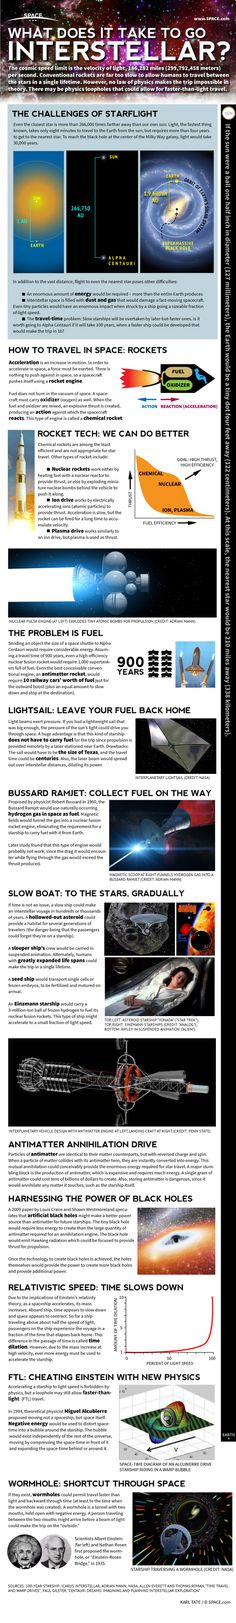 How Interstellar Space Travel Works (Infographic) by Karl Tate, SPACE.com Infographics Artist